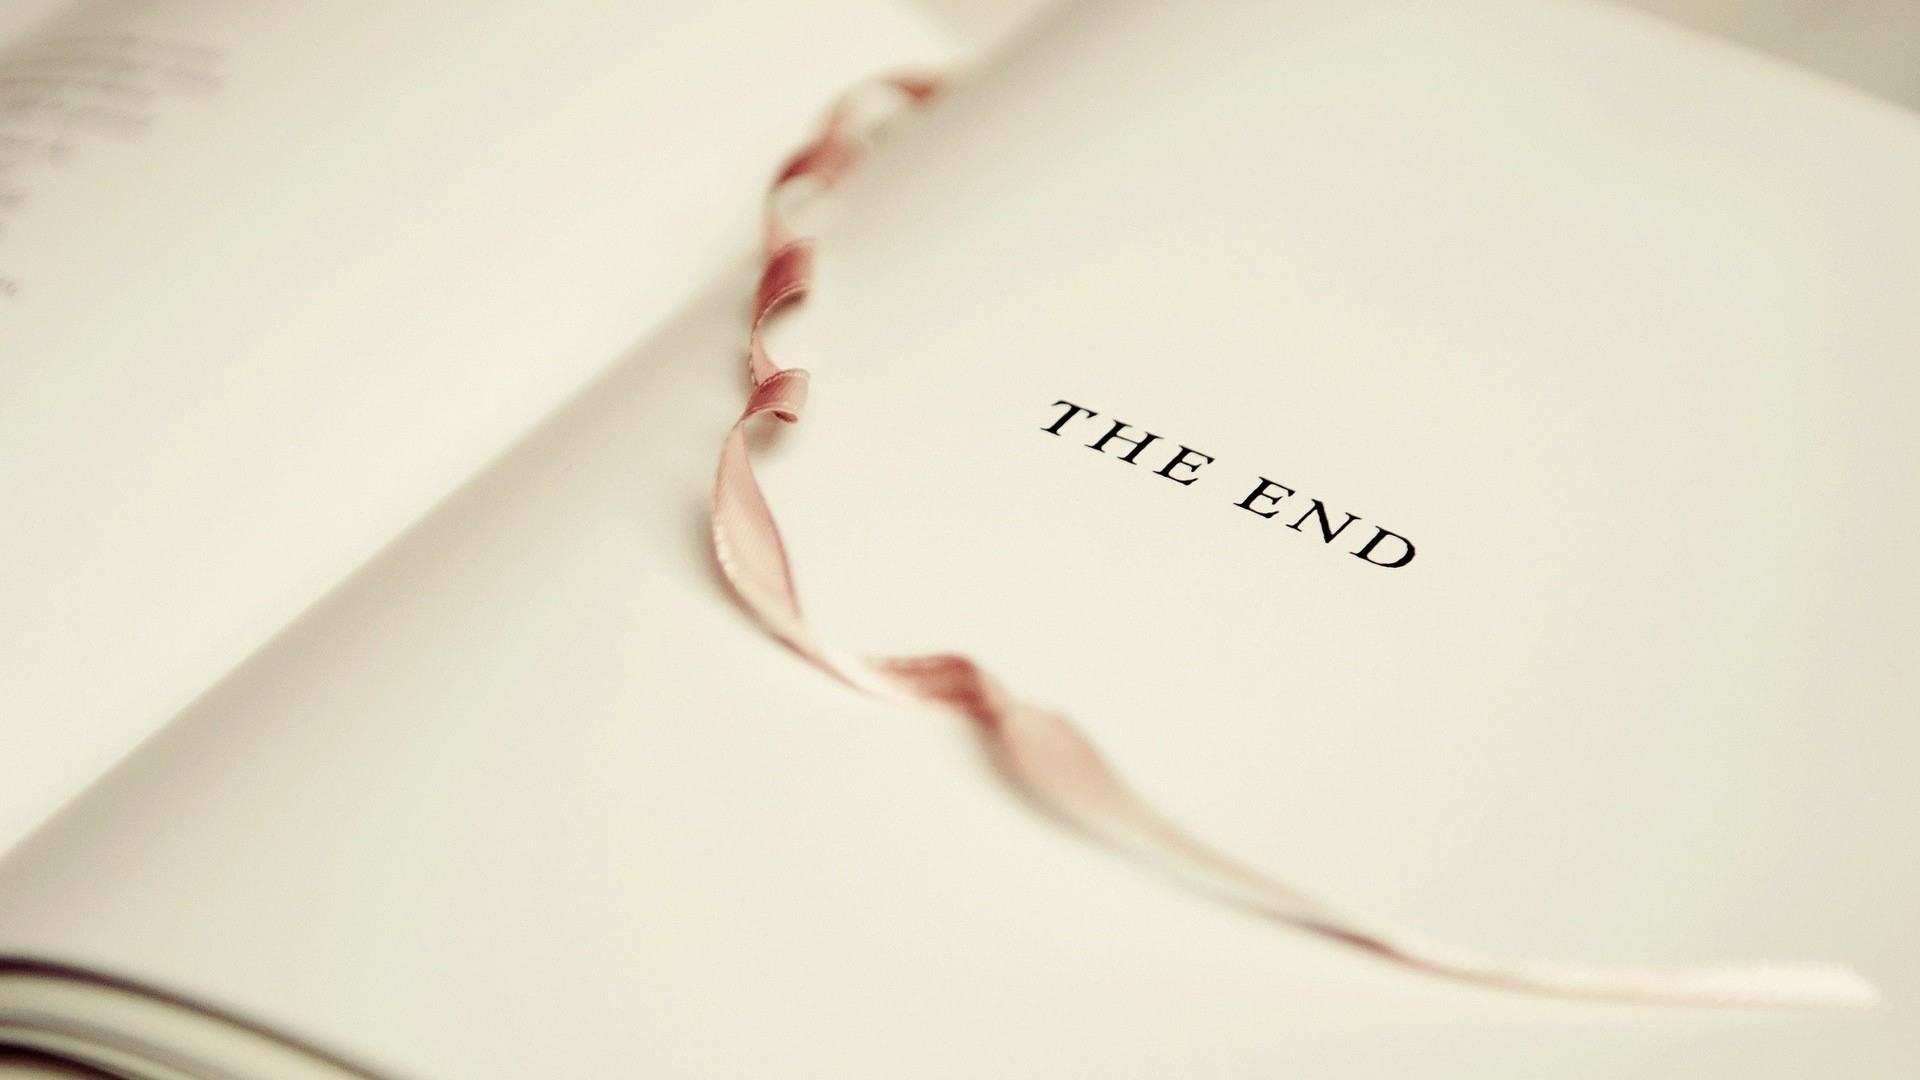 Page Tab The End 49247 1920x1080 Download Wallpaper Book